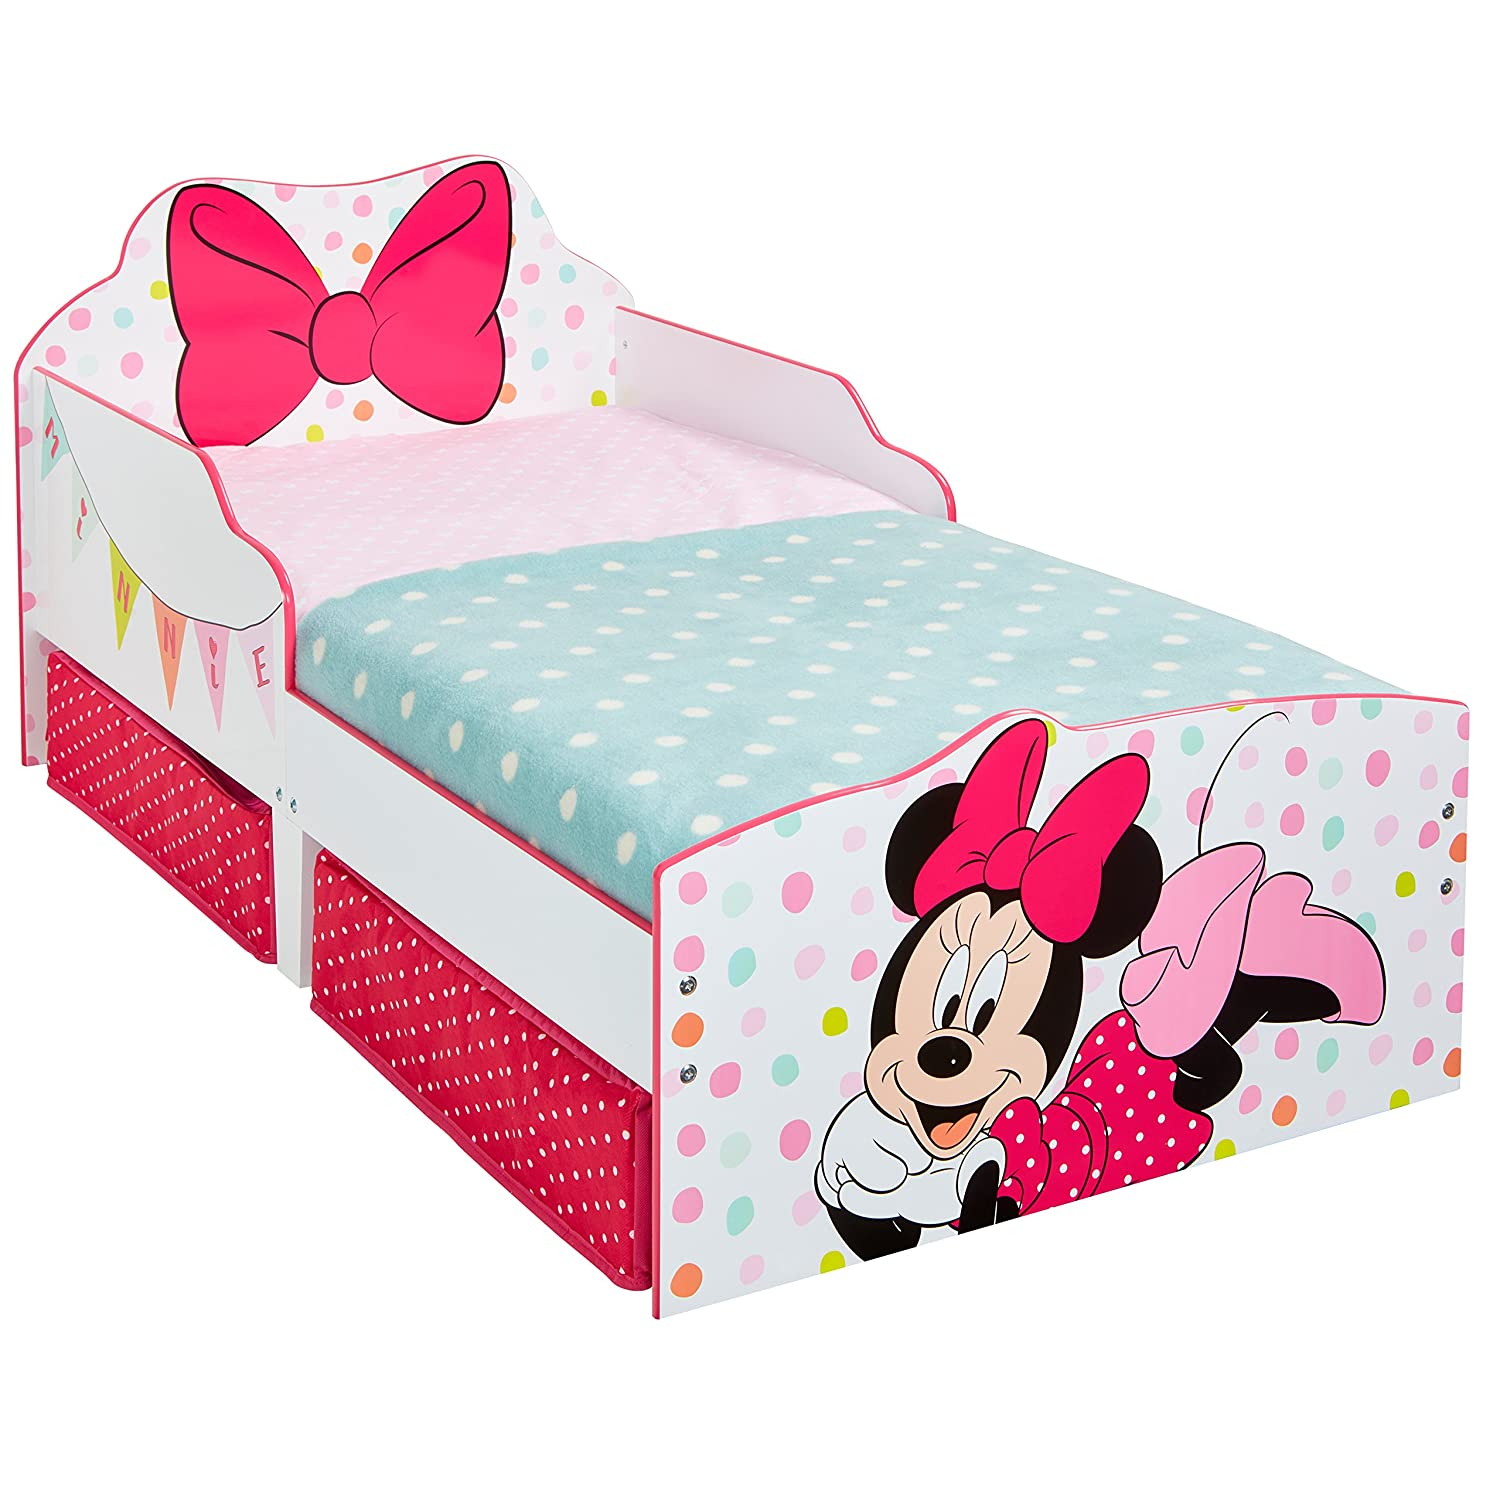 Hello Home Minnie Mouse Toddler Bed With Underbed Storage Wood